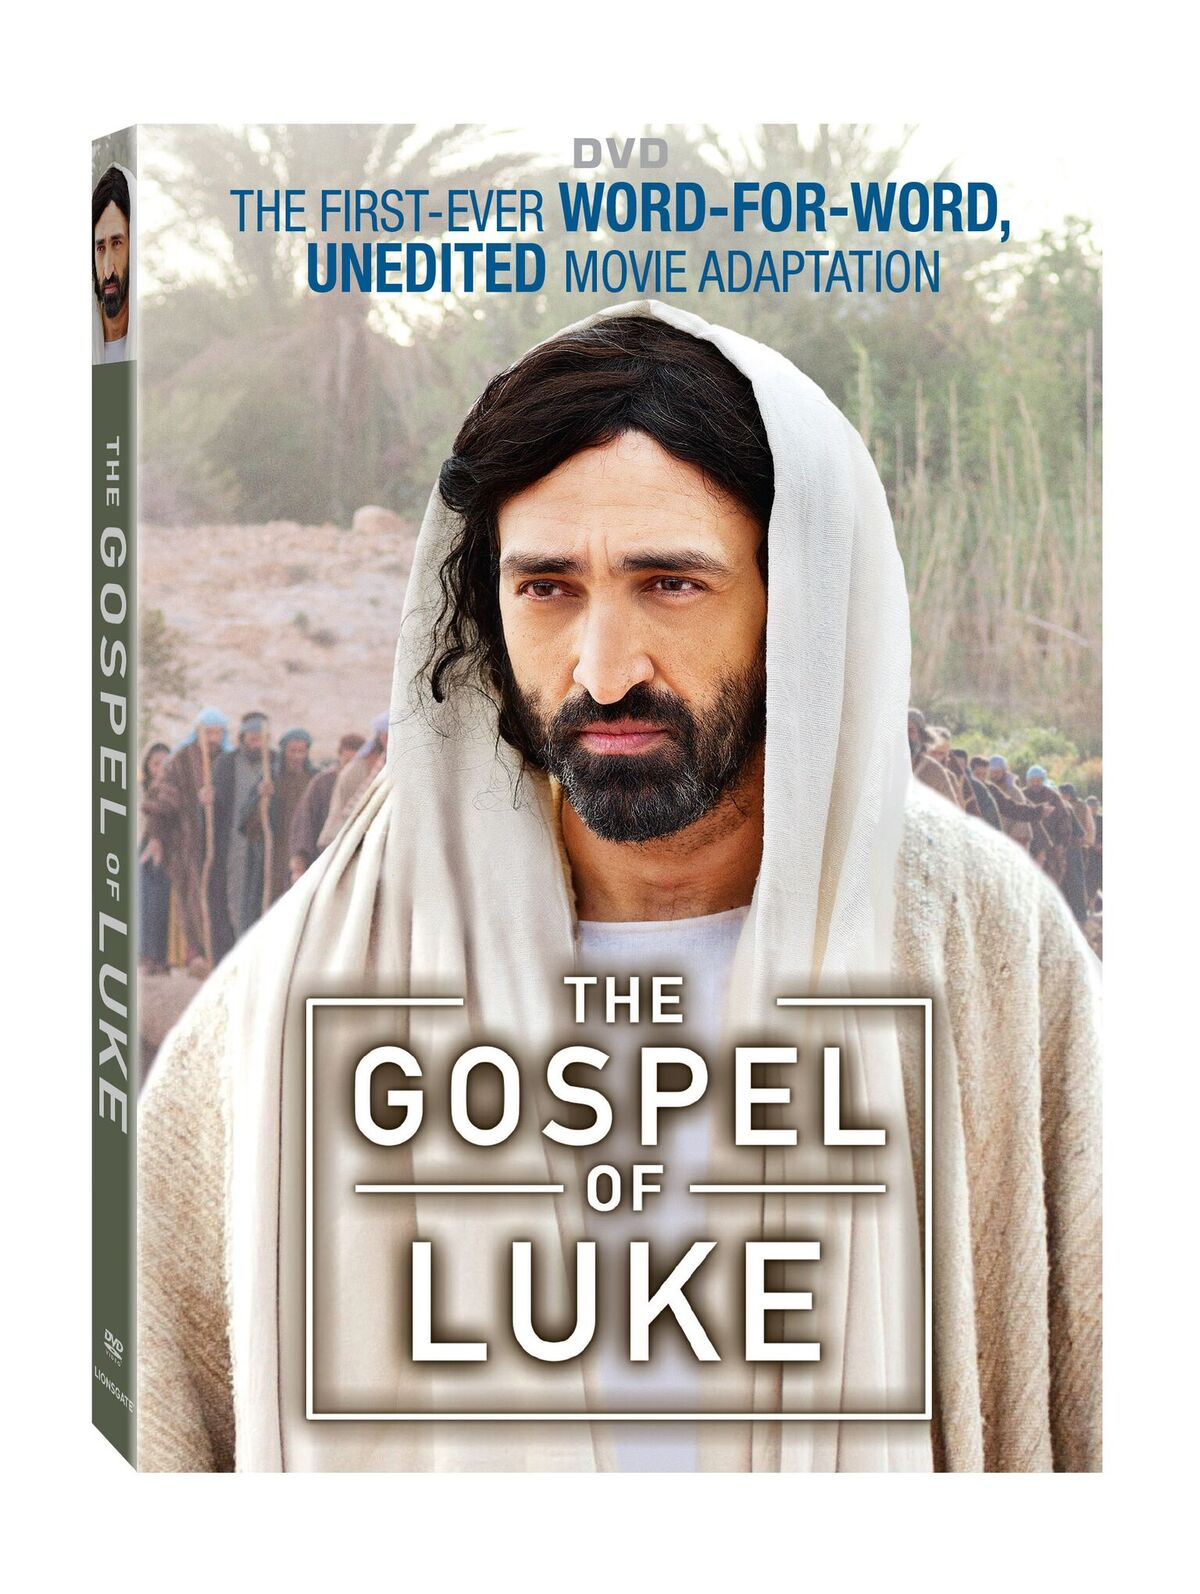 The Gospel of Luke DVD #TheGospelOfLuke DVD @LionsGate @CraftyZoo